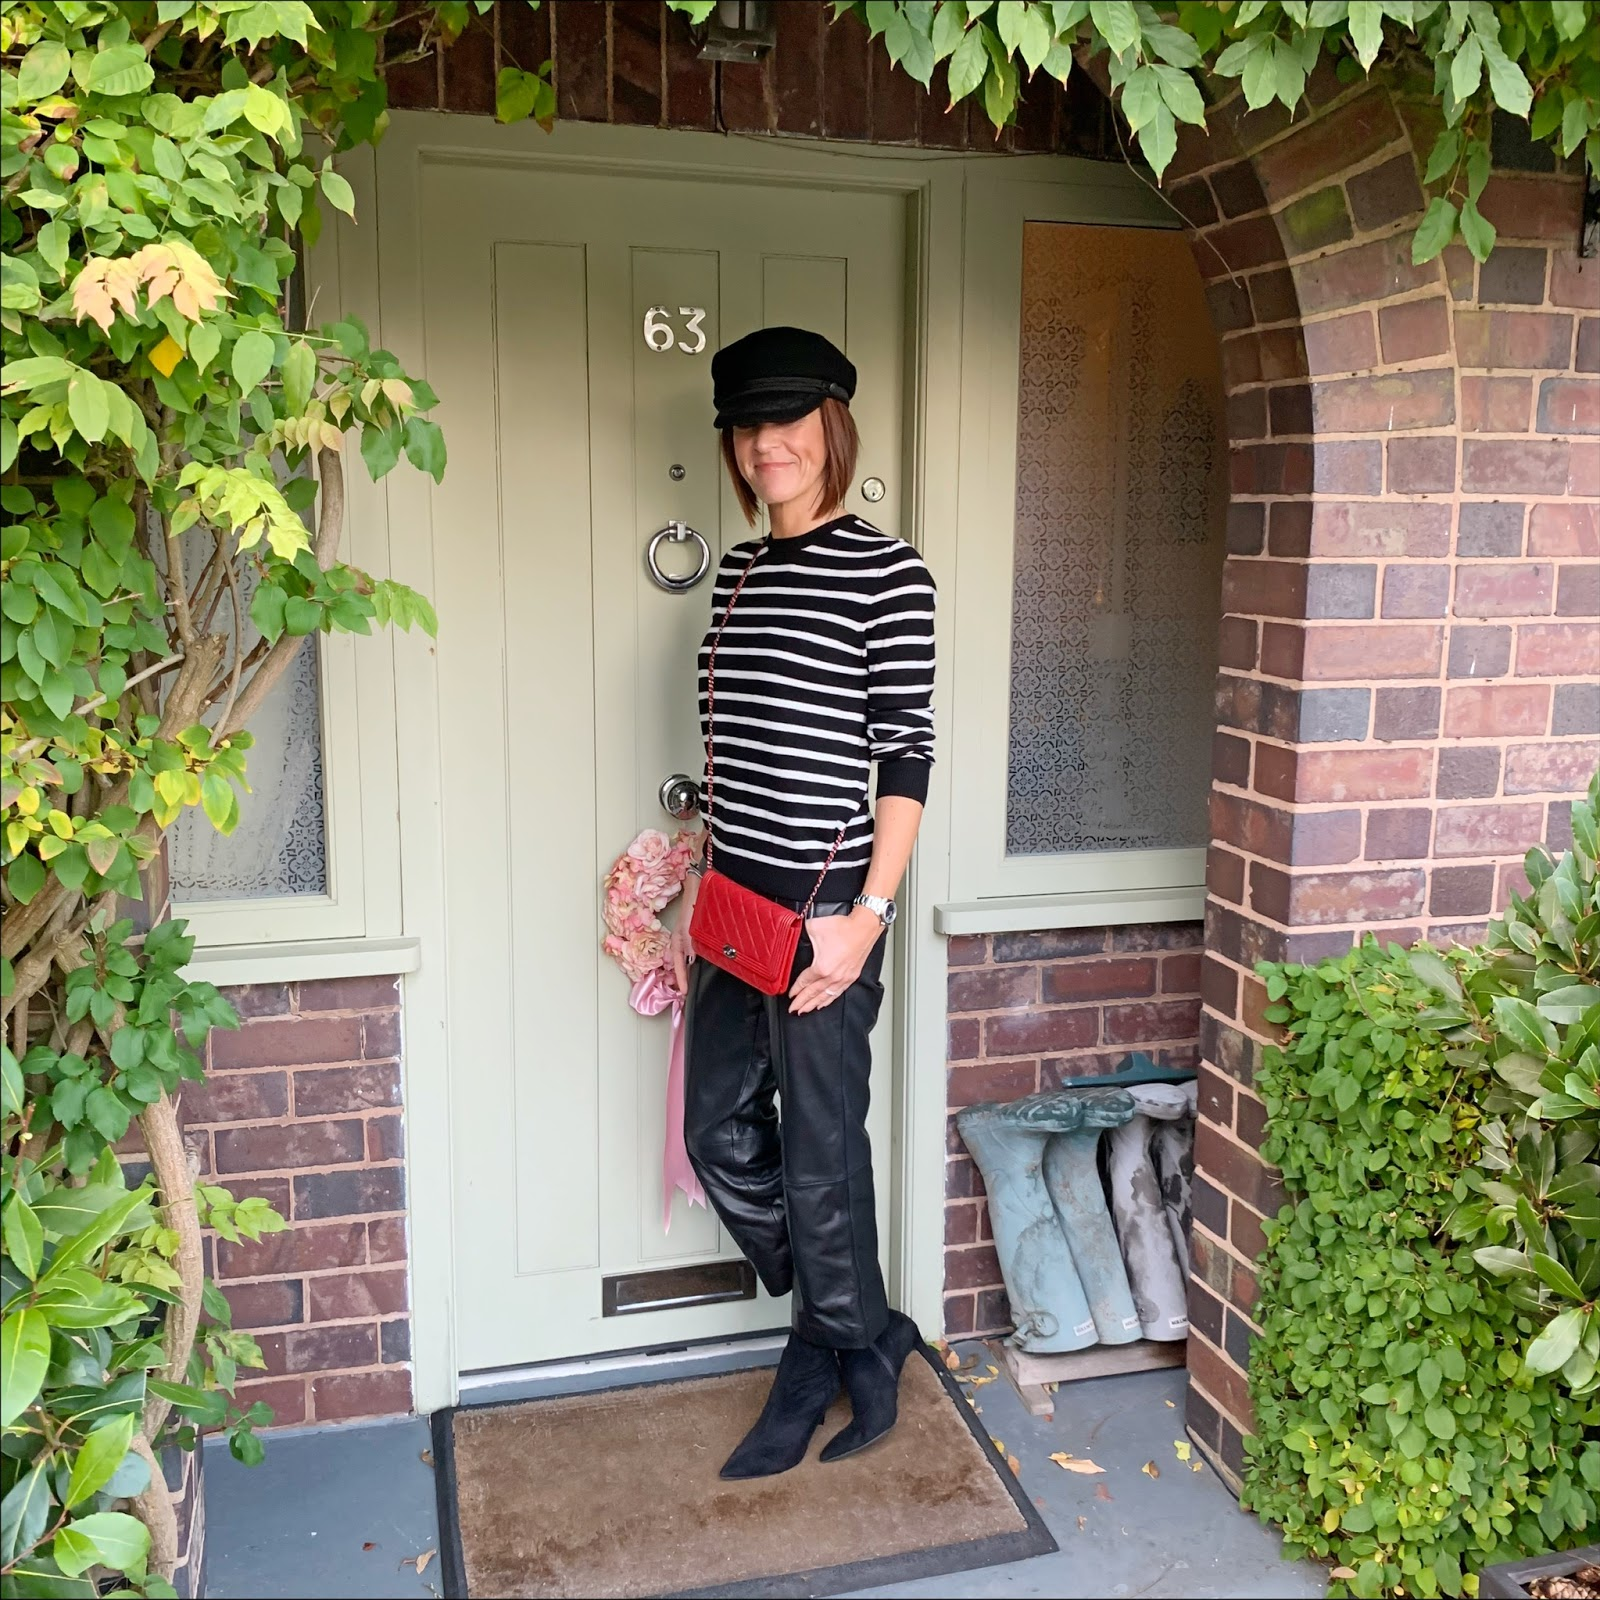 my midlife fashion, handm baker boy cap, chanel wallet on chain, marks and spencer stiletto heel velvet ankle boots, marks and spencer pure cashmere stripe round neck jumper, marks and spencer leather straight leg trousers